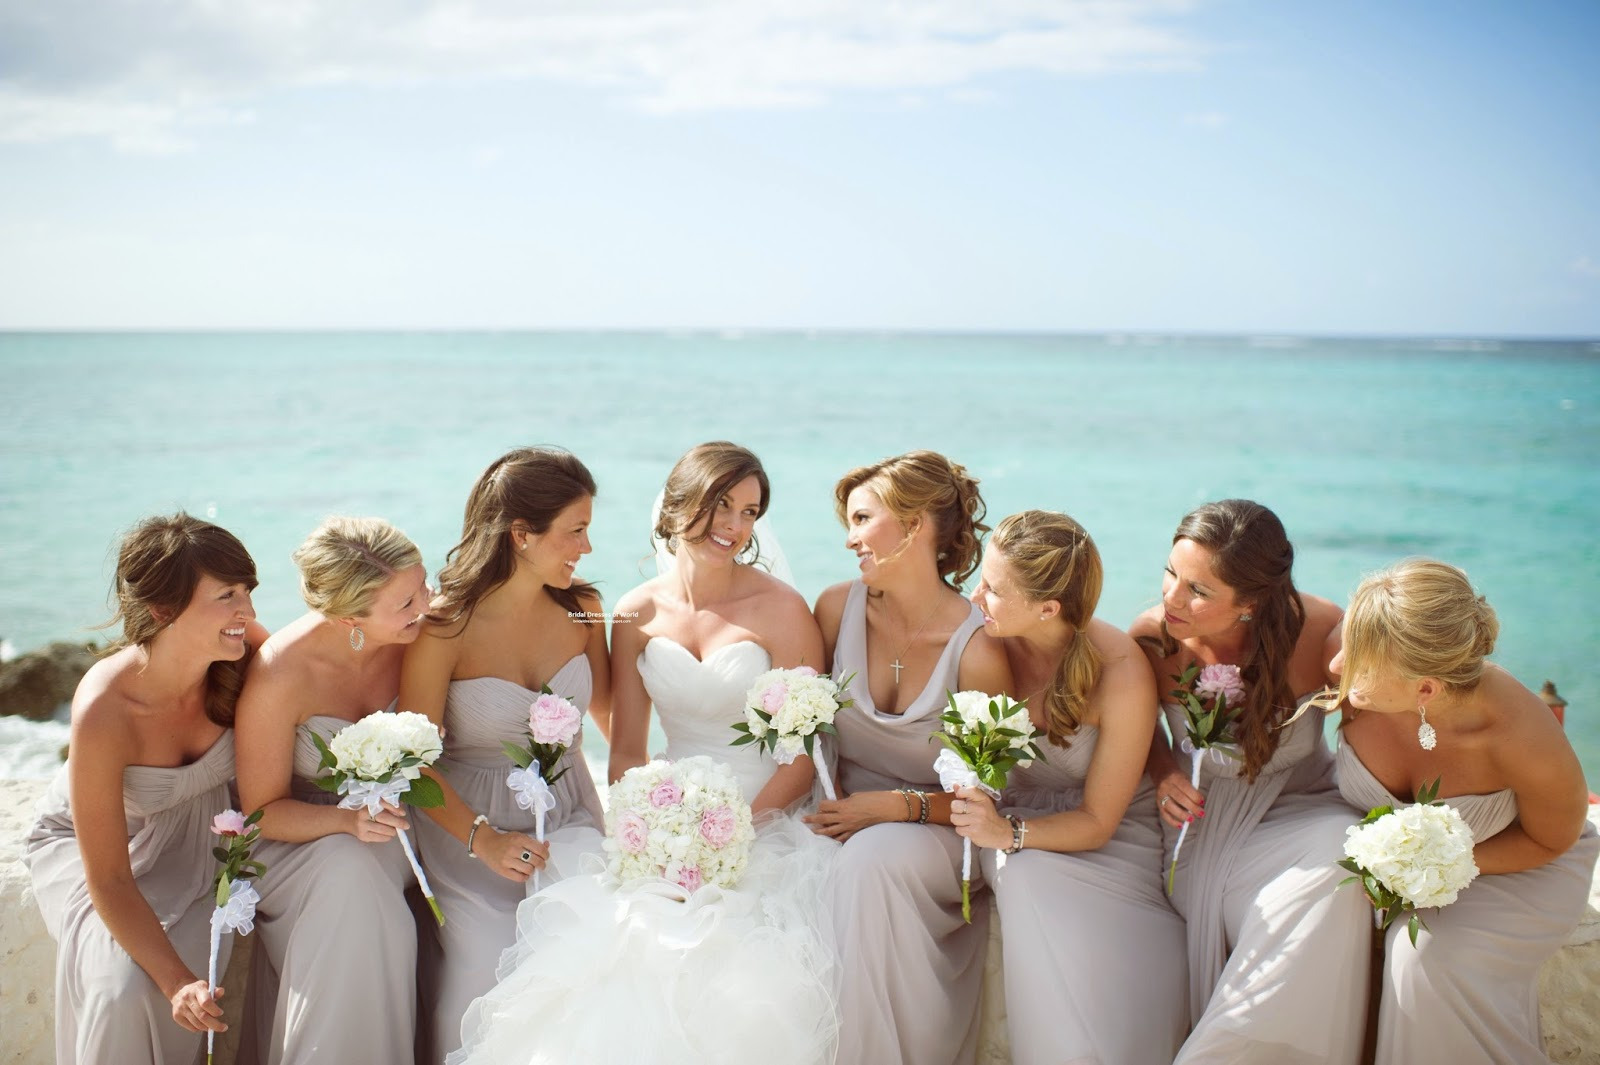 Bridal dresses of world june 2014 about 75 percent of wedding dresses on the market are strapless dresses or sleeveless in part because such dresses require less skill from the designers ombrellifo Images